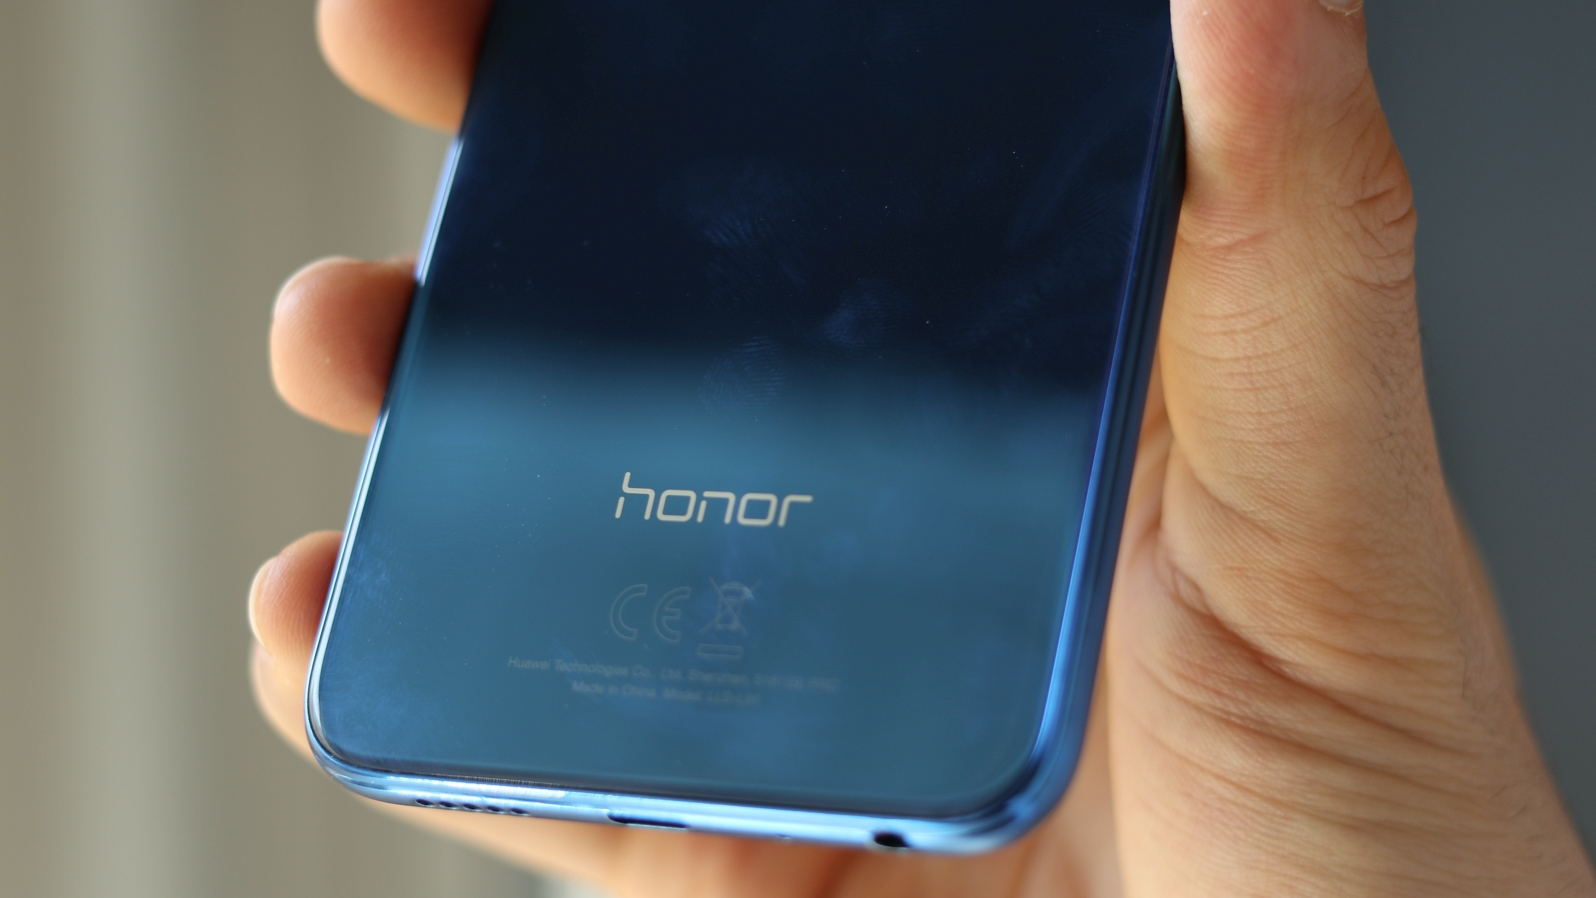 Huawei Android ban: Time for Honor to rise to the challenge